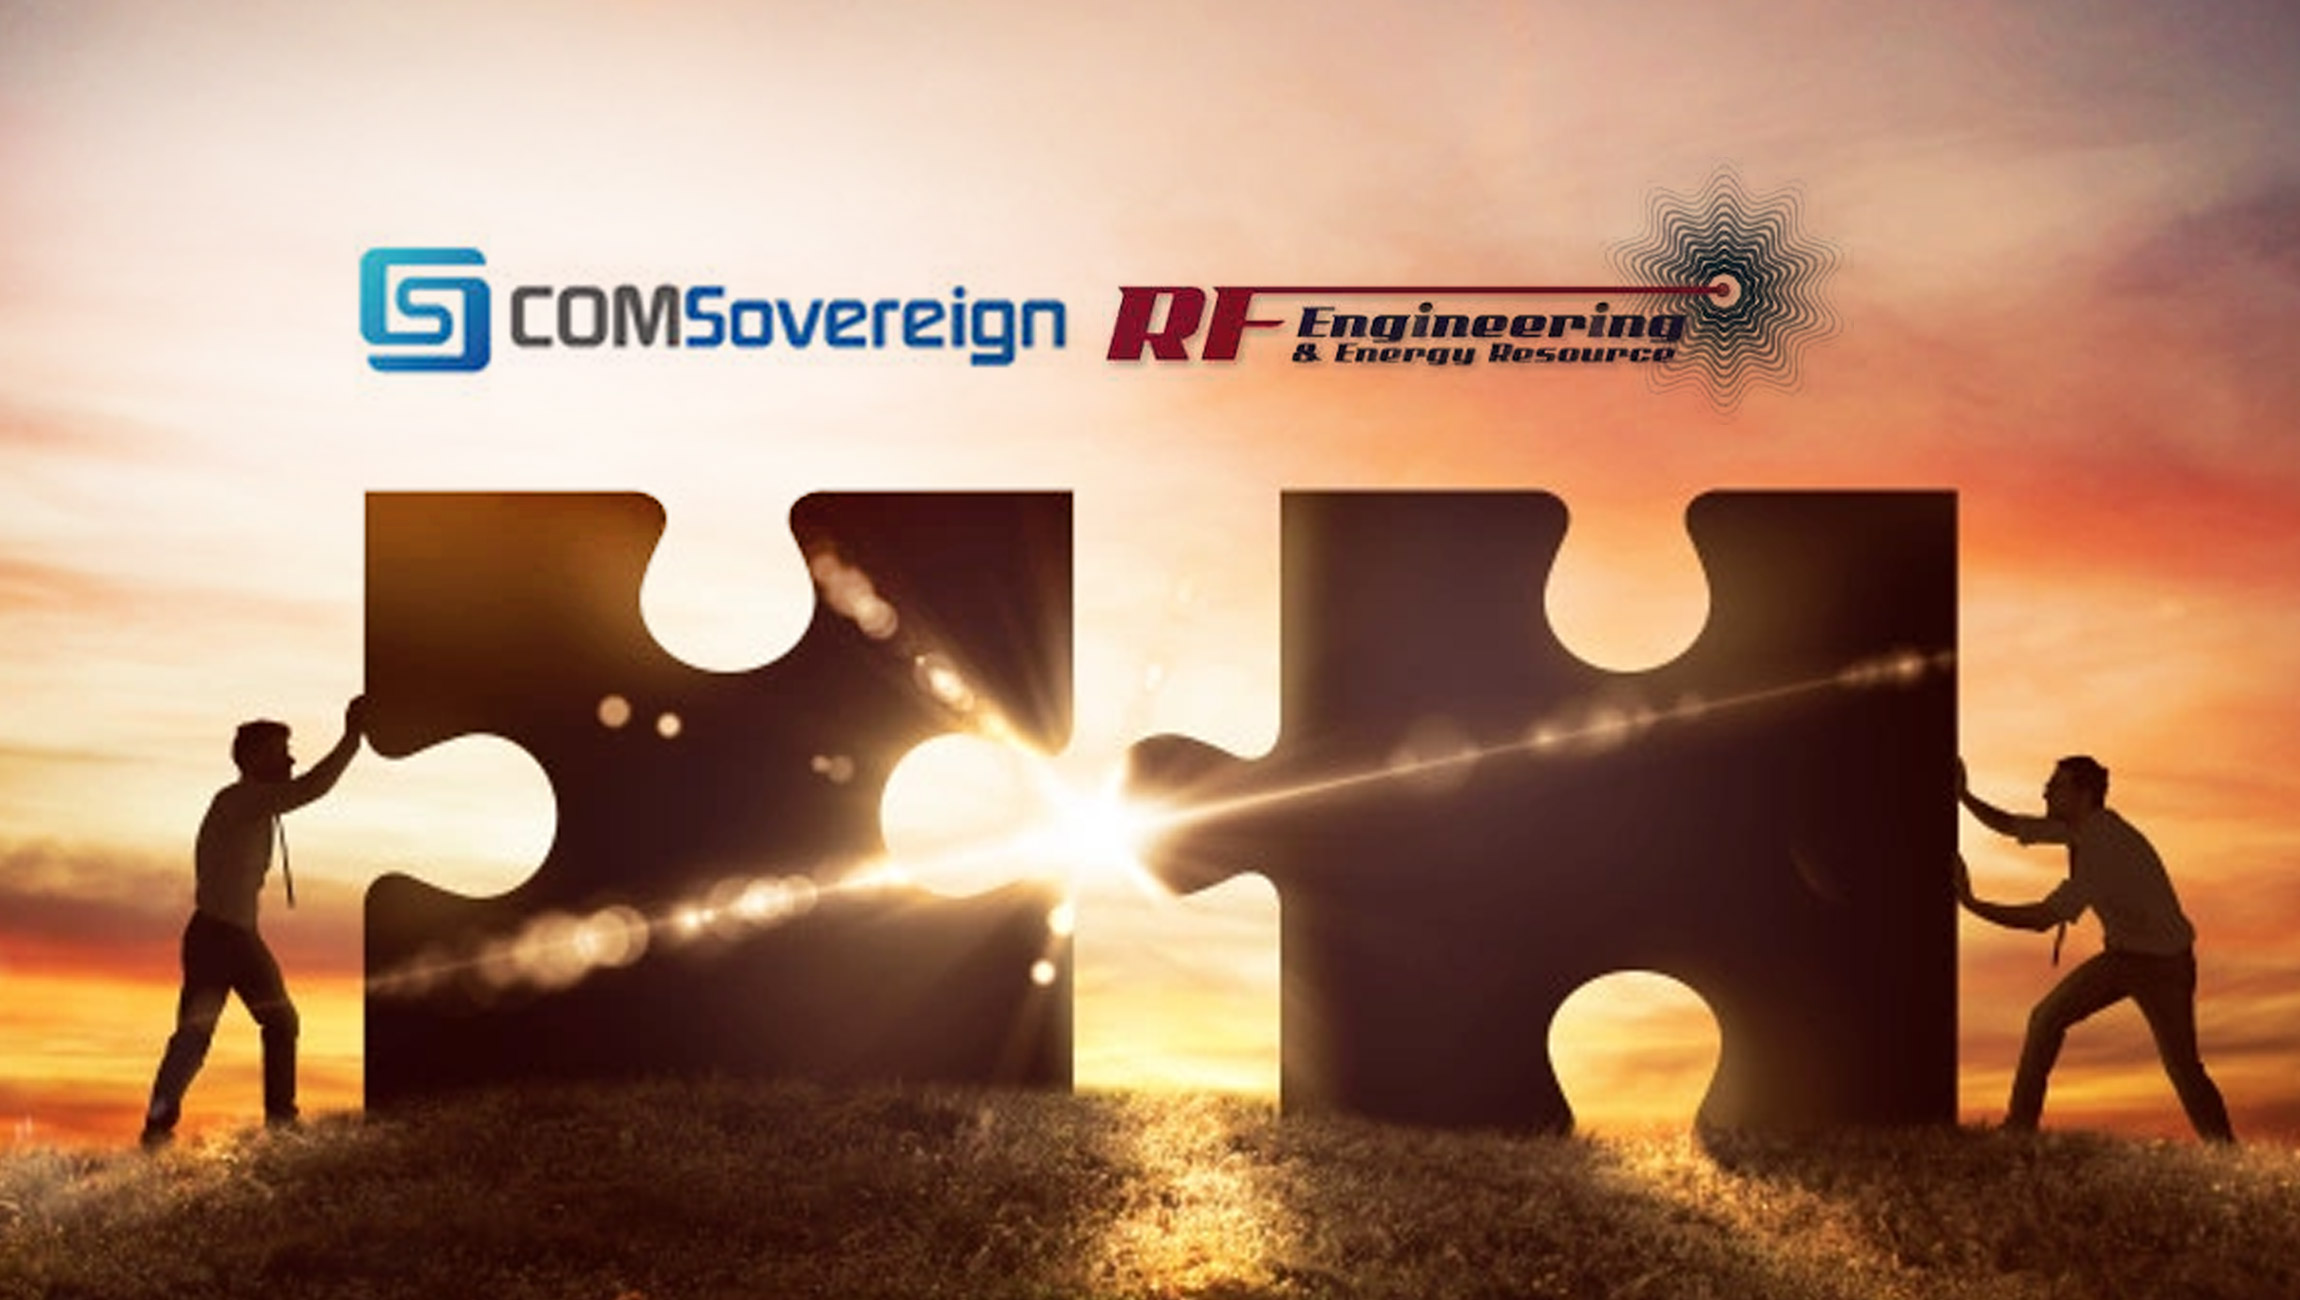 COMSovereign-Acquires-RF-Engineering-_-Energy-Resource_-Adding-Advanced-Antenna-Design-Capabilities-and-Telecom-Network-Sales-Channels